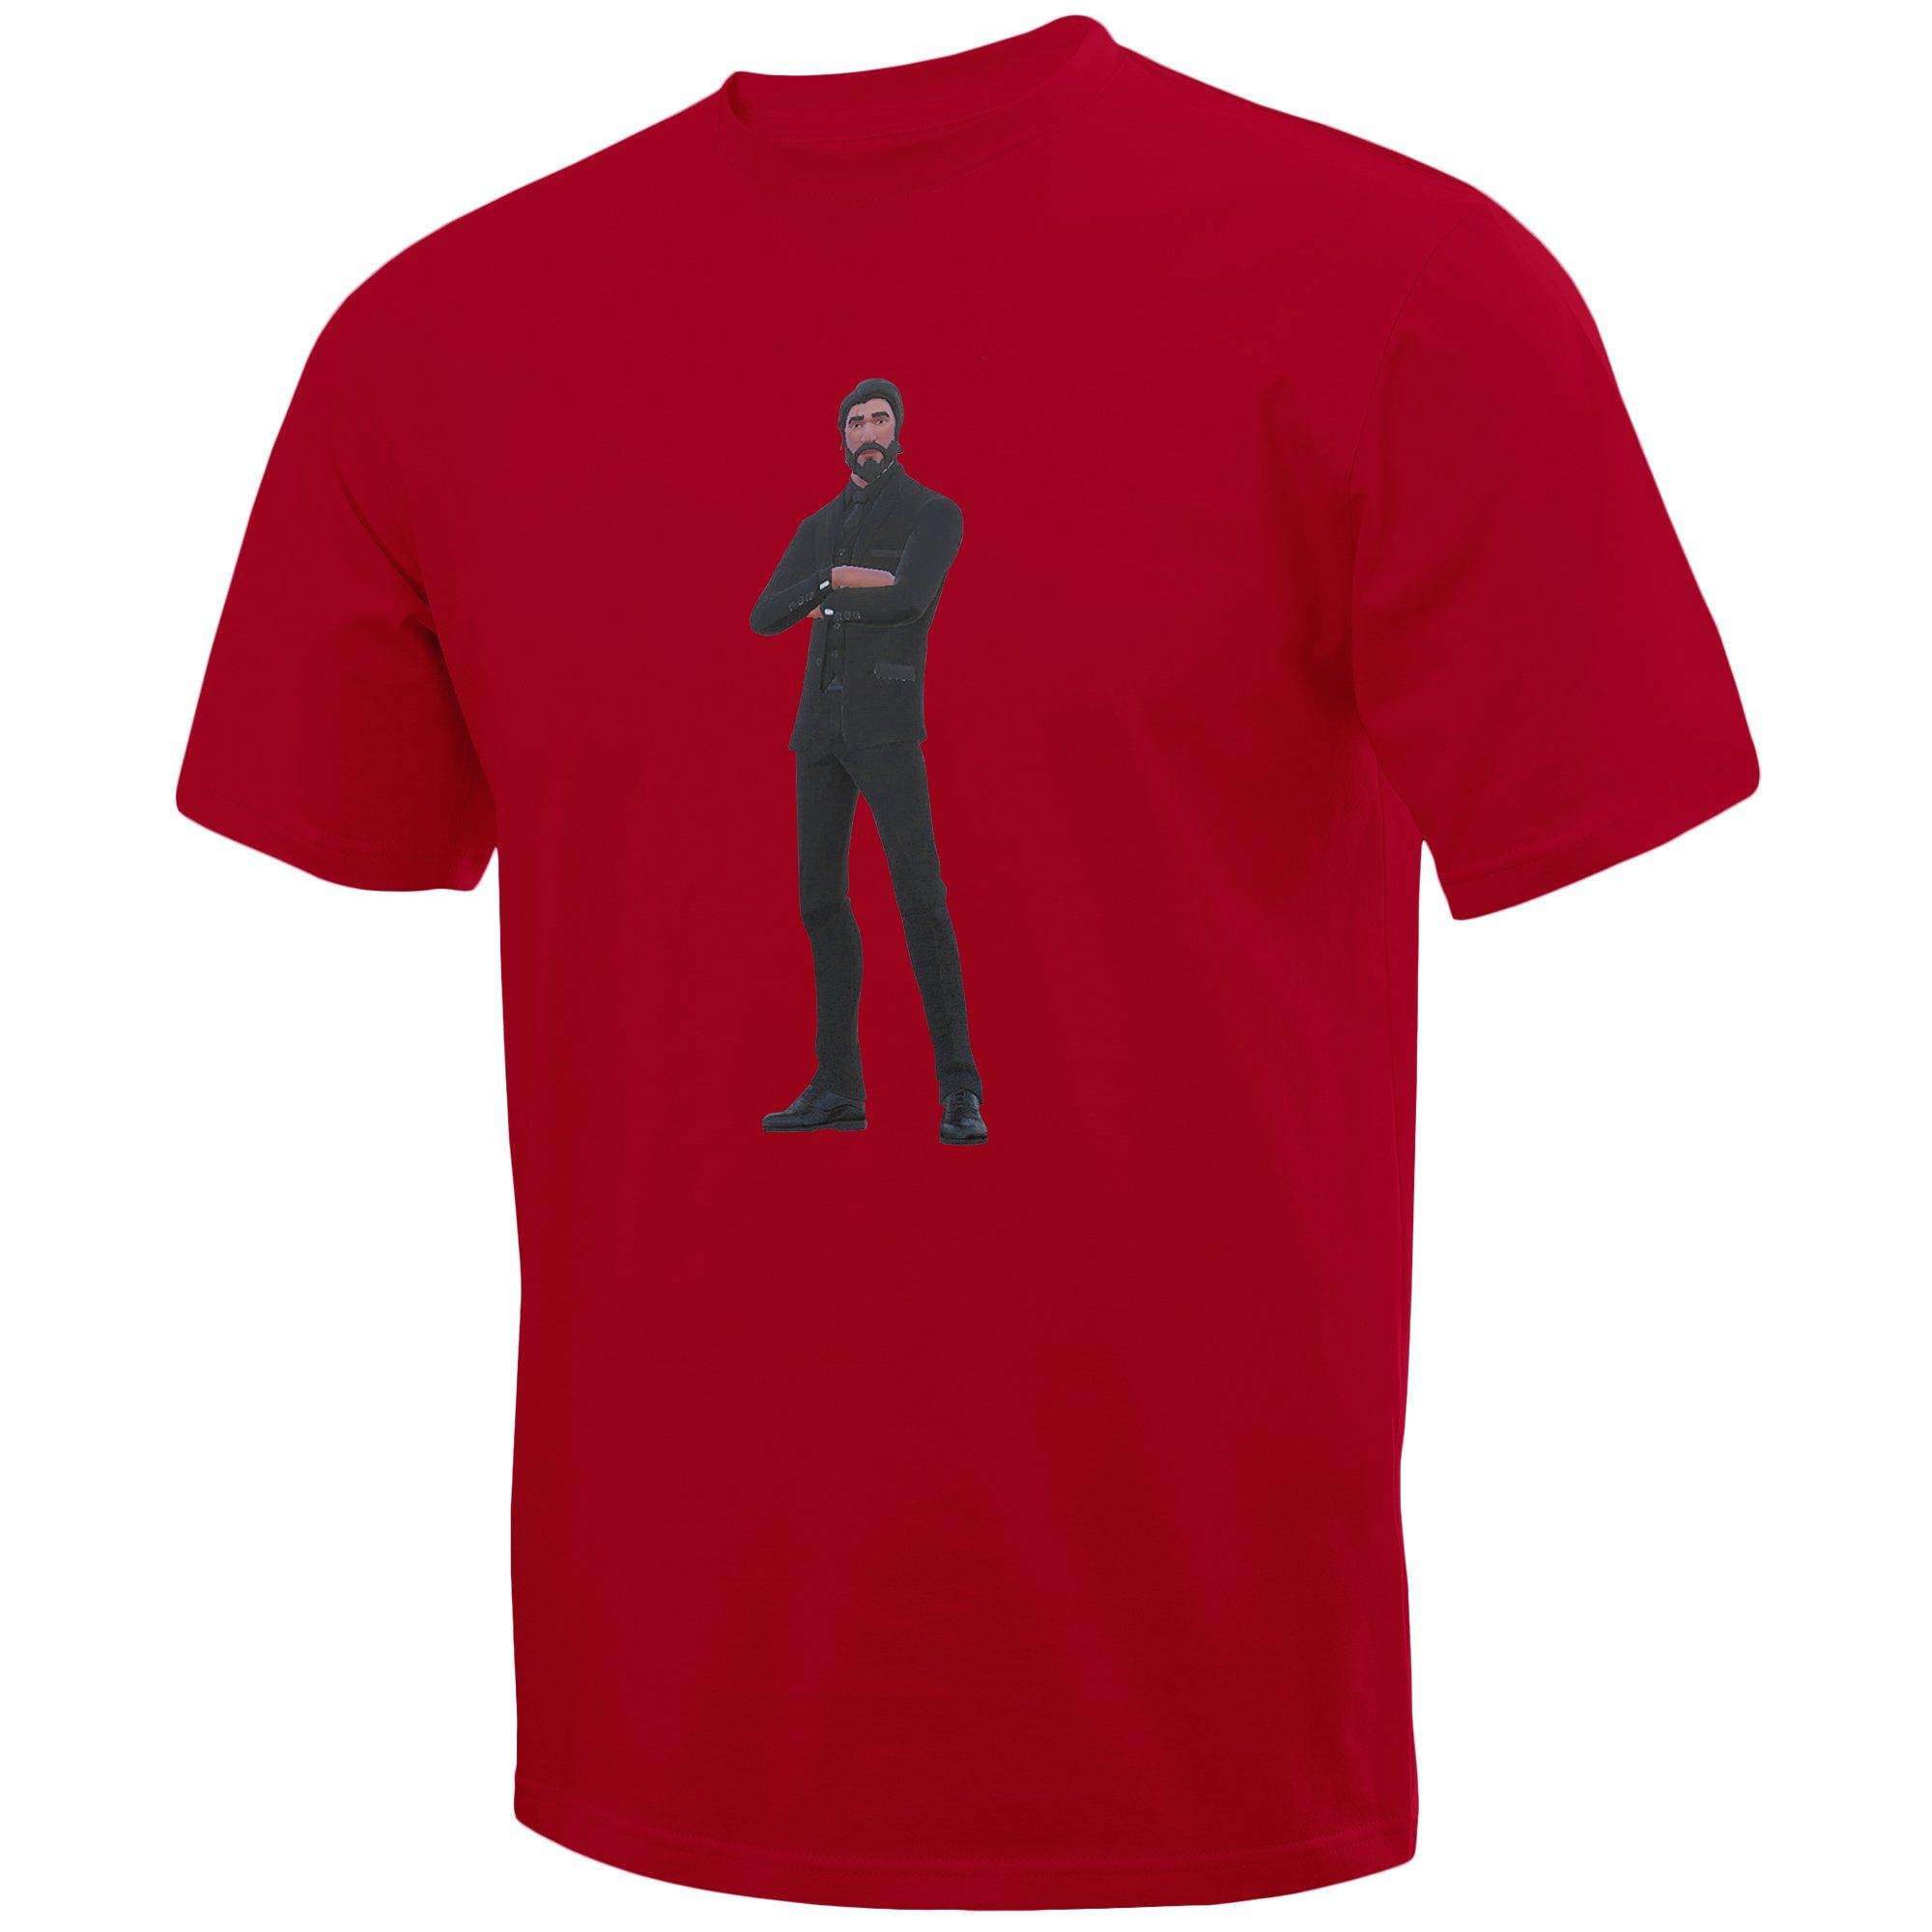 4f1894f4 Stay fresh in our killer selection of custom t-shirts. Each shirt is made  with pre-shrunk 100% combed ringspun cotton and is form-fitting for  absolute ...